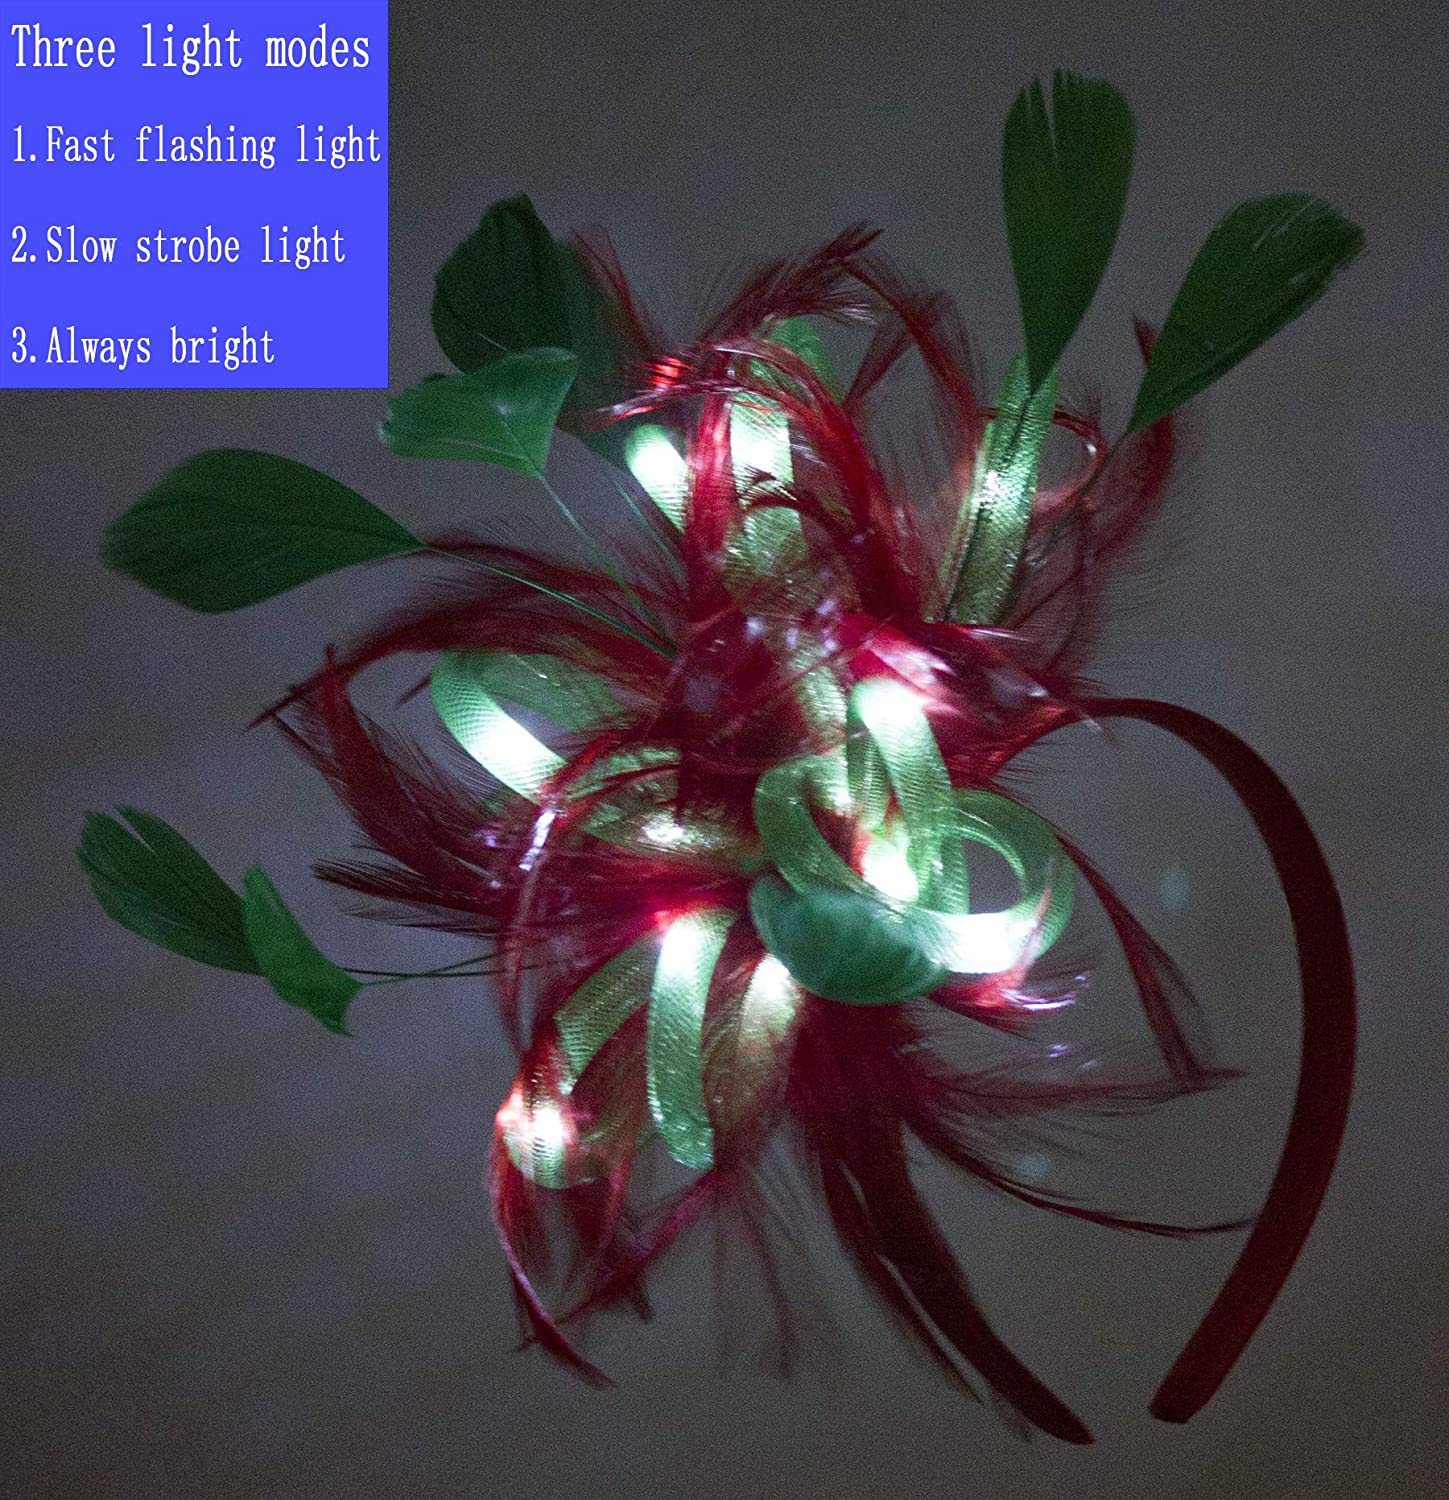 Myjoyday LED Light up Festival Feather Fascinator Coloured Lighting Special Occasion Events Festive Headband for Women